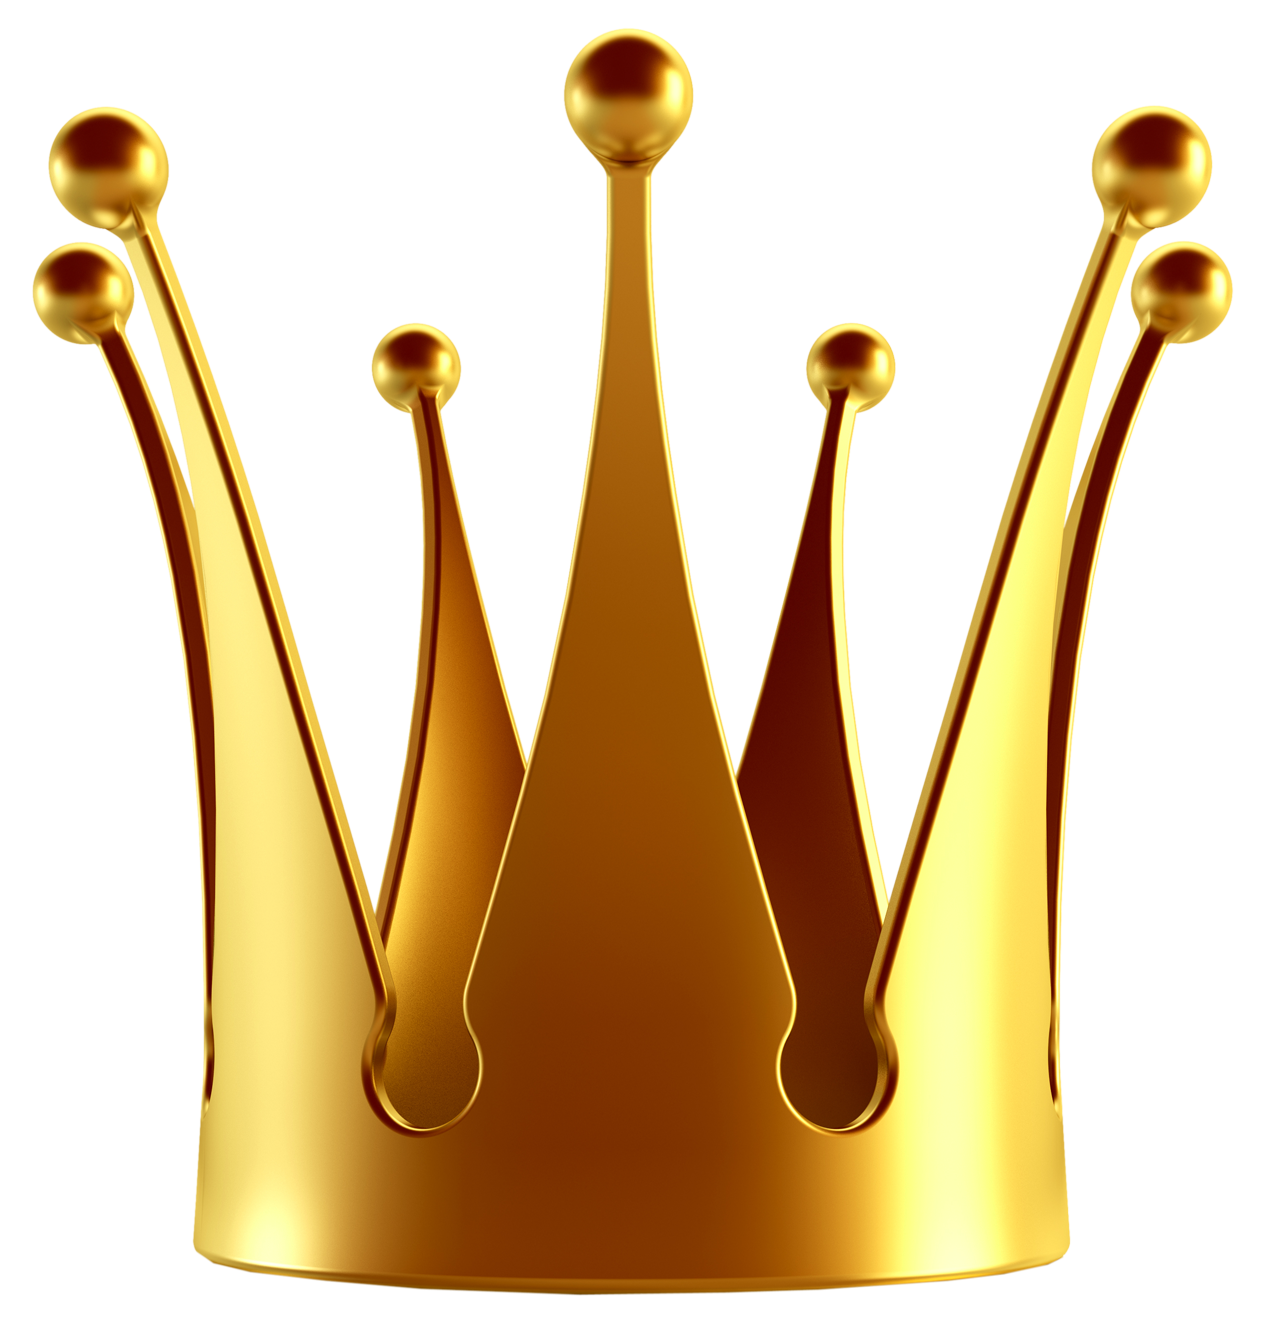 1264x1335 King Gold Crown Clipart